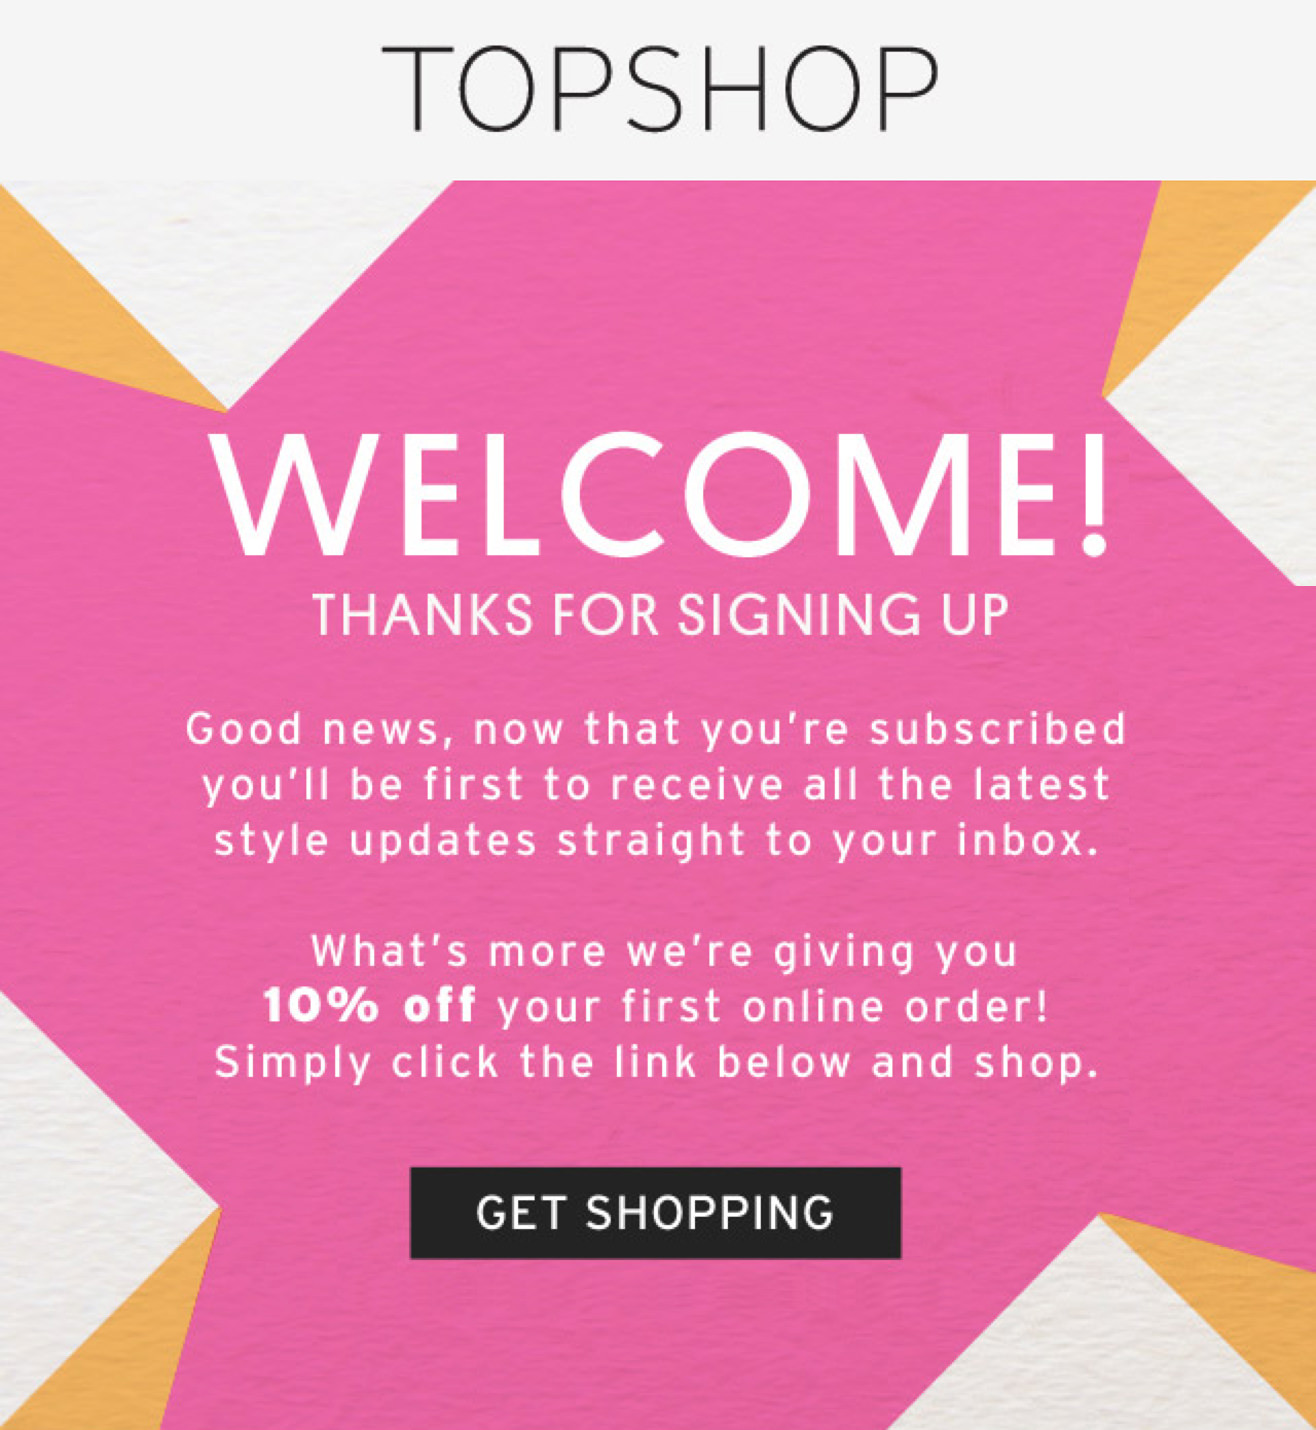 Topshop – Welcome Transactional Email